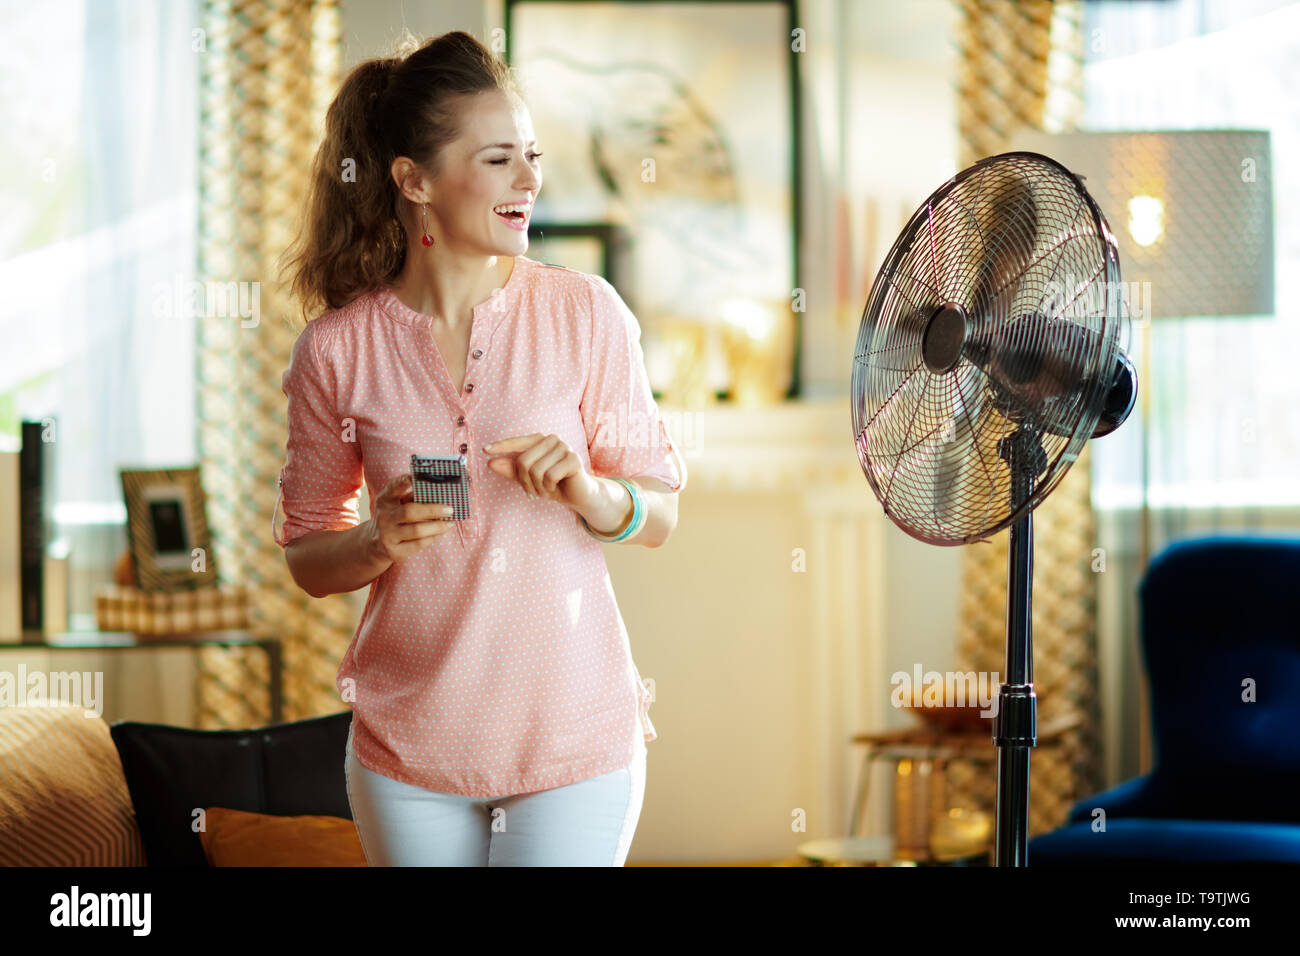 happy modern housewife in the modern house in sunny hot summer day using smart home app in smartphone to control fan. - Stock Image